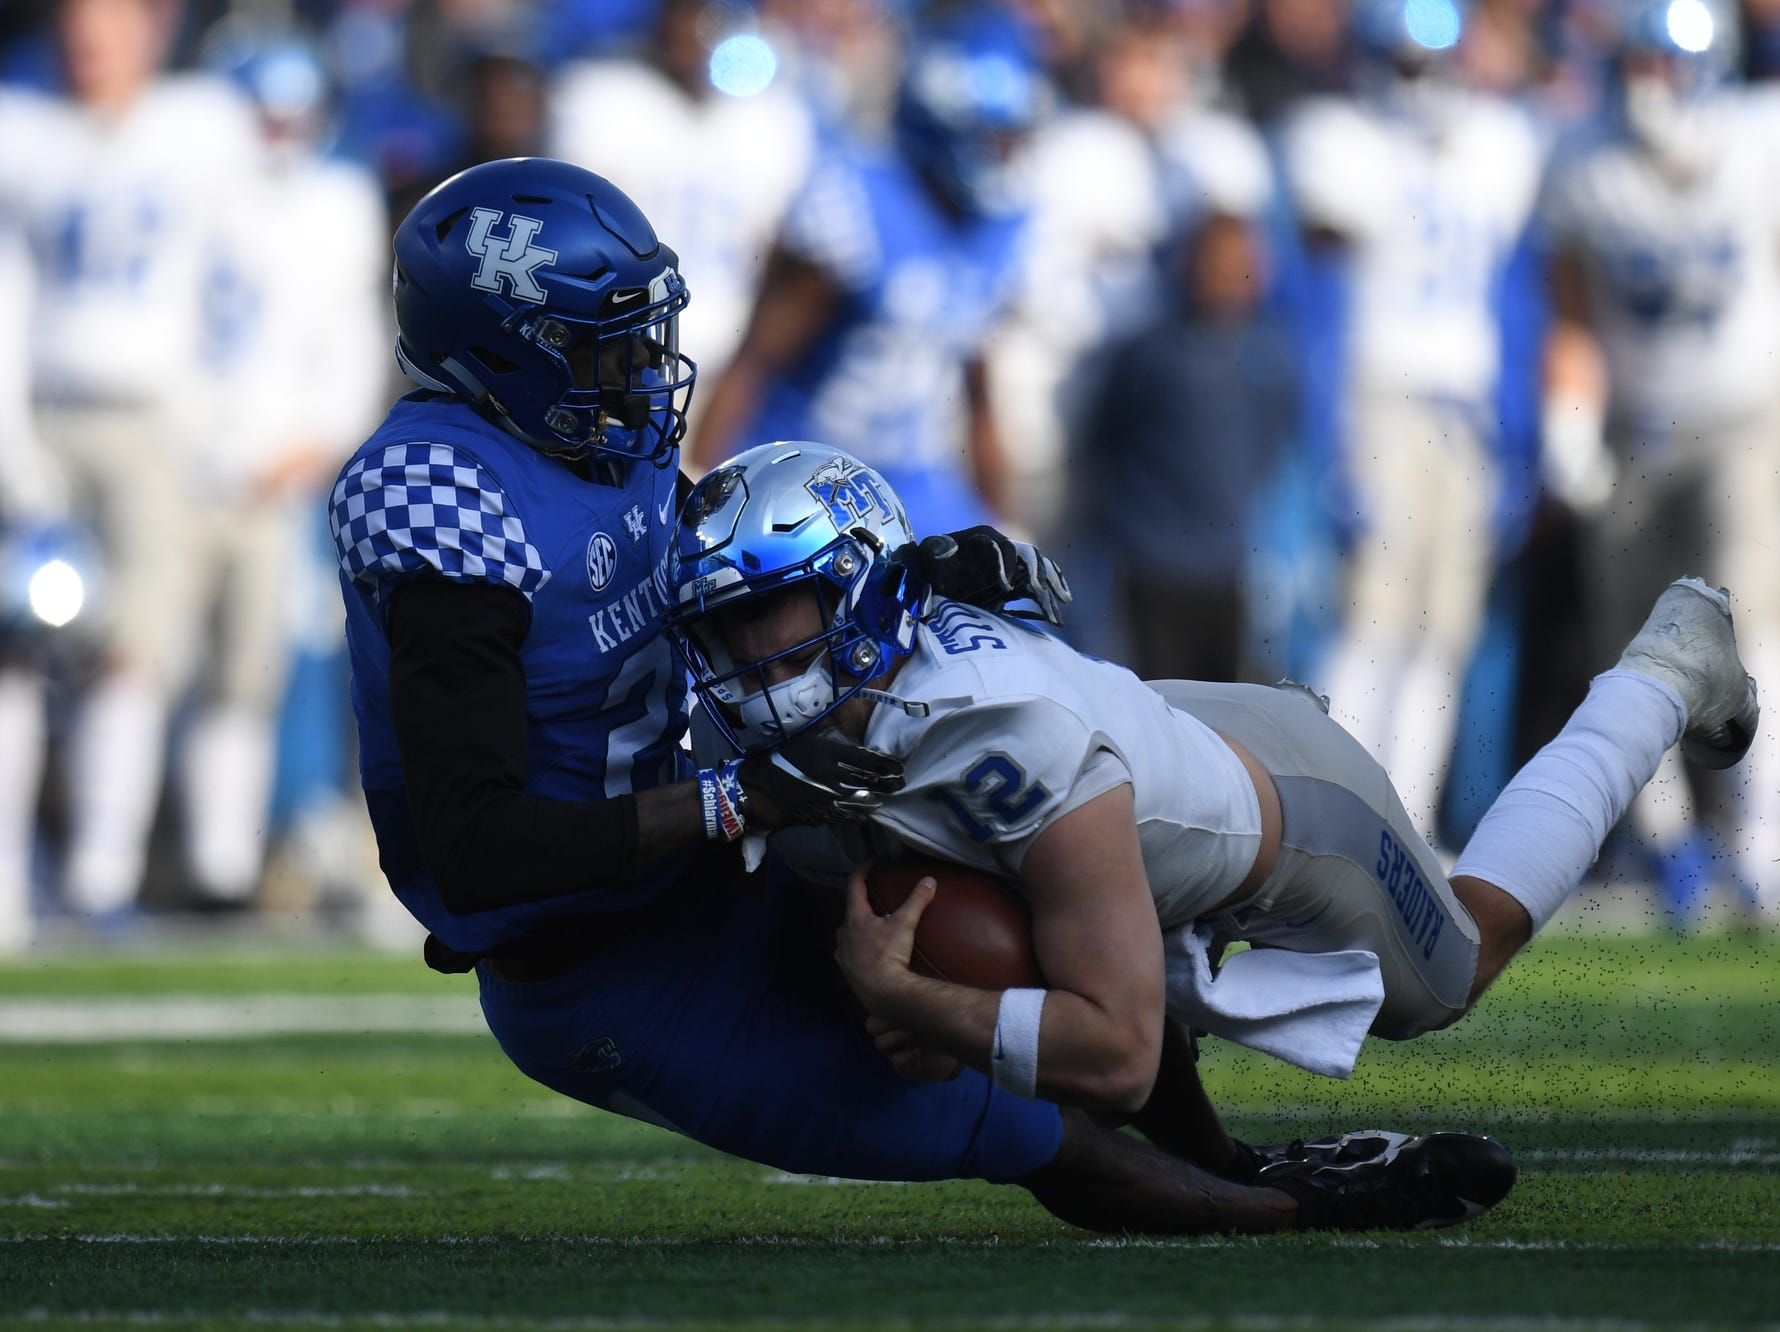 UK CB Chris Westry gets a sack during the University of Kentucky football game against Middle Tennessee at Kroger Field in Lexington, Kentucky on Saturday, November 17, 2018.